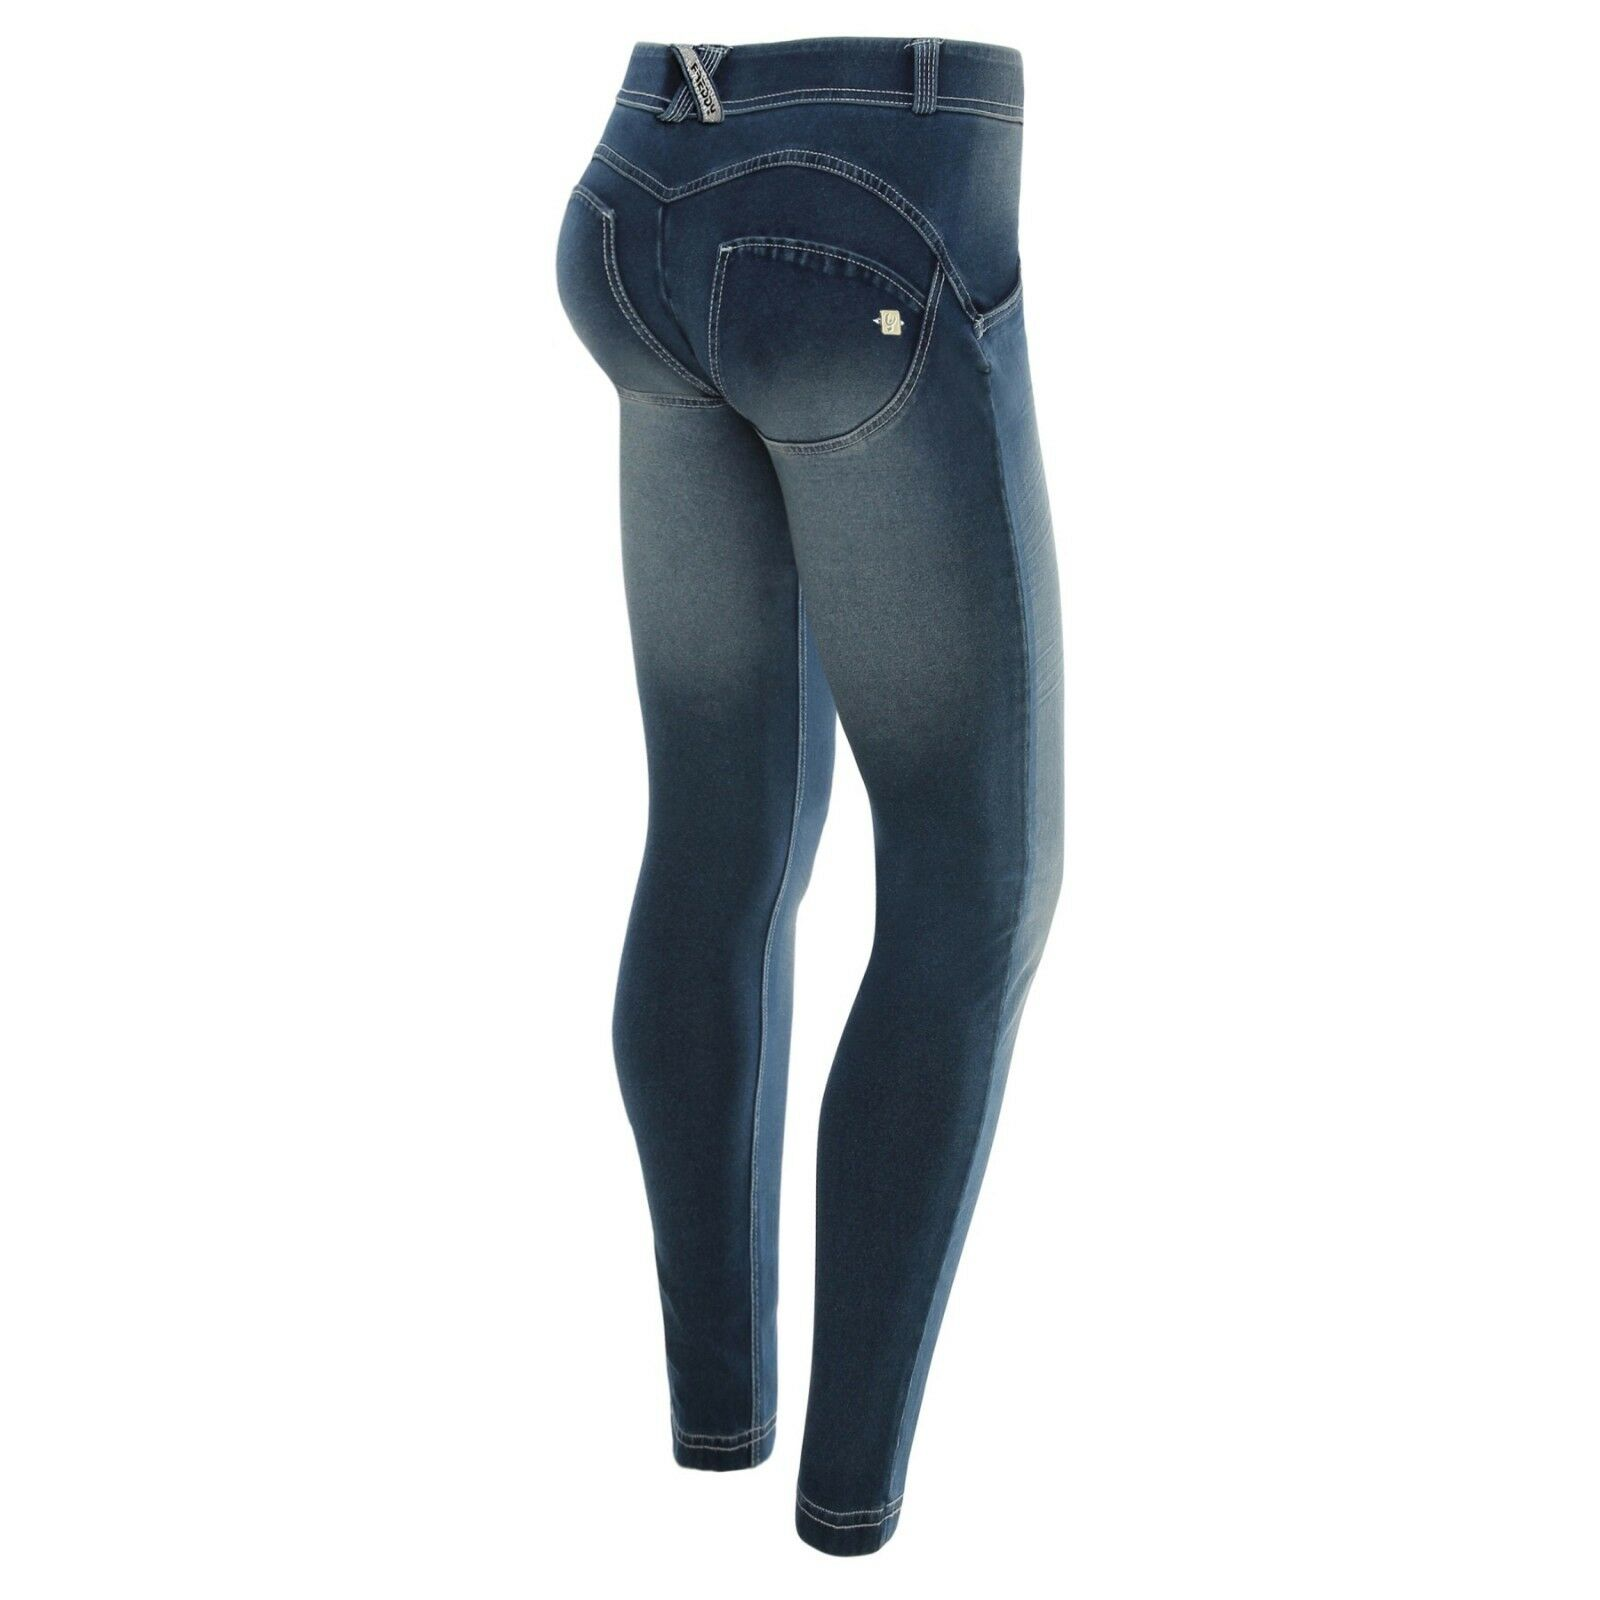 DISCOUNT 20% FREDDY WR.UP JEANS XS S M L XL LONG TROUSERS PUSH UP WRUP1RA05E